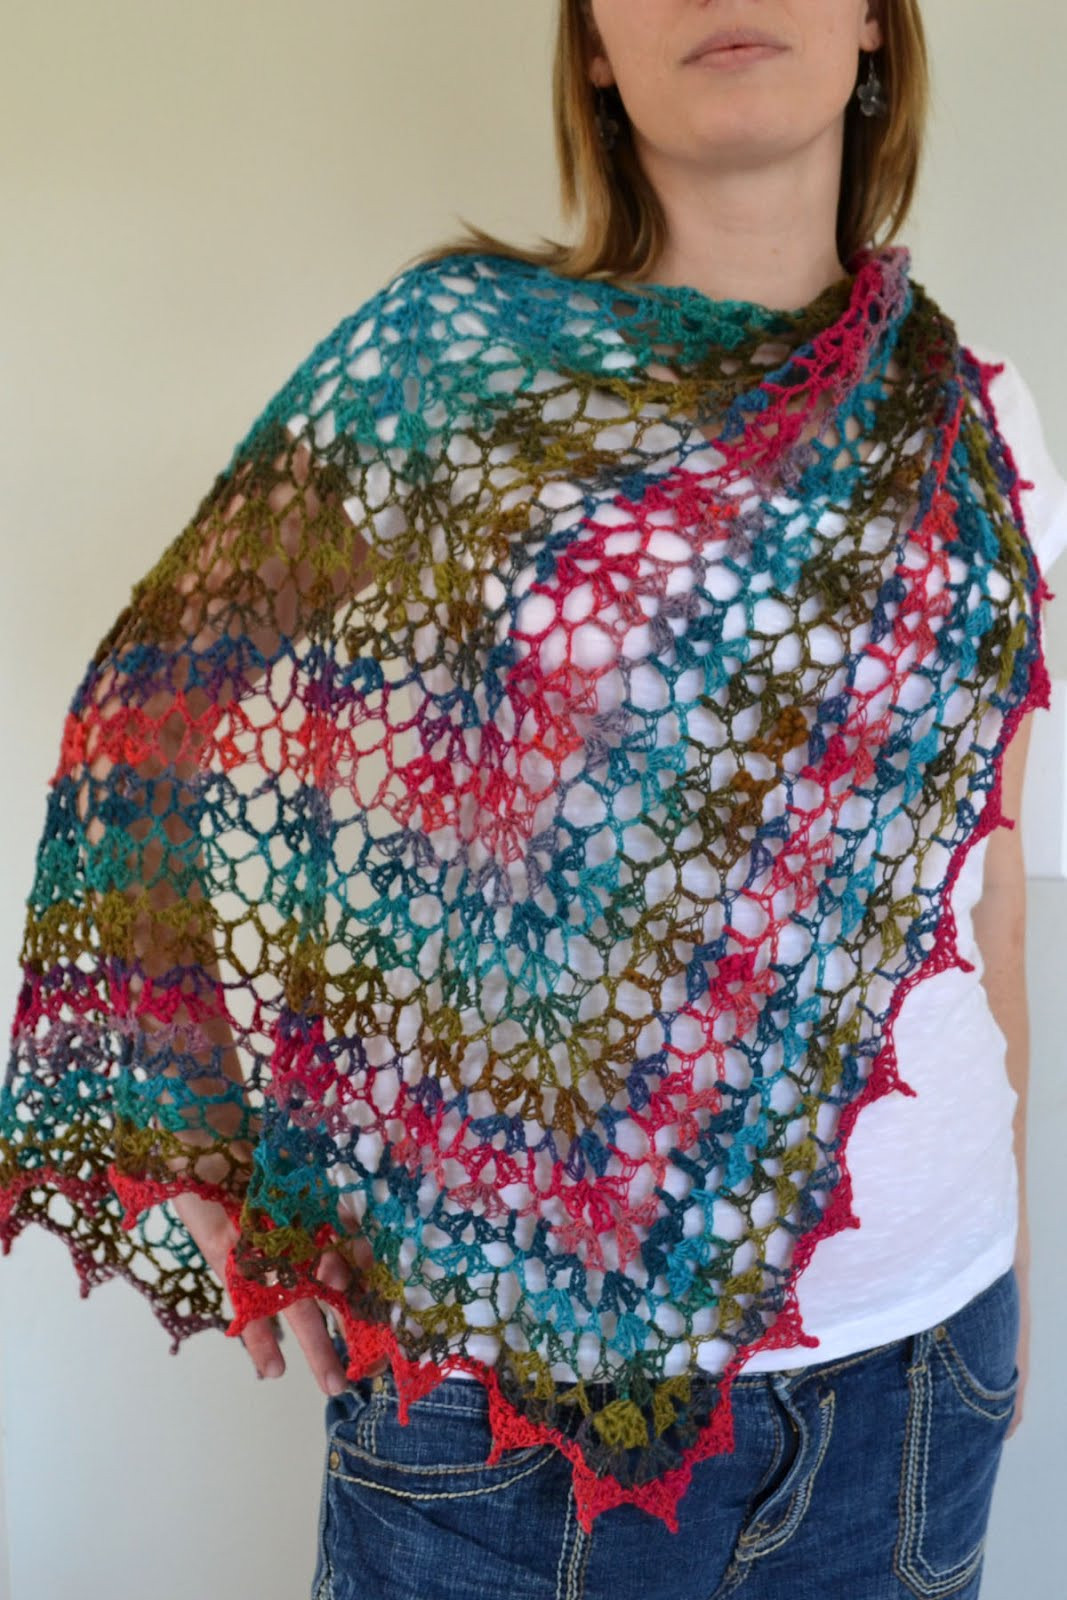 Crochet Shawl Luxury Crochet In Color My noro Shawl Of Perfect 46 Images Crochet Shawl